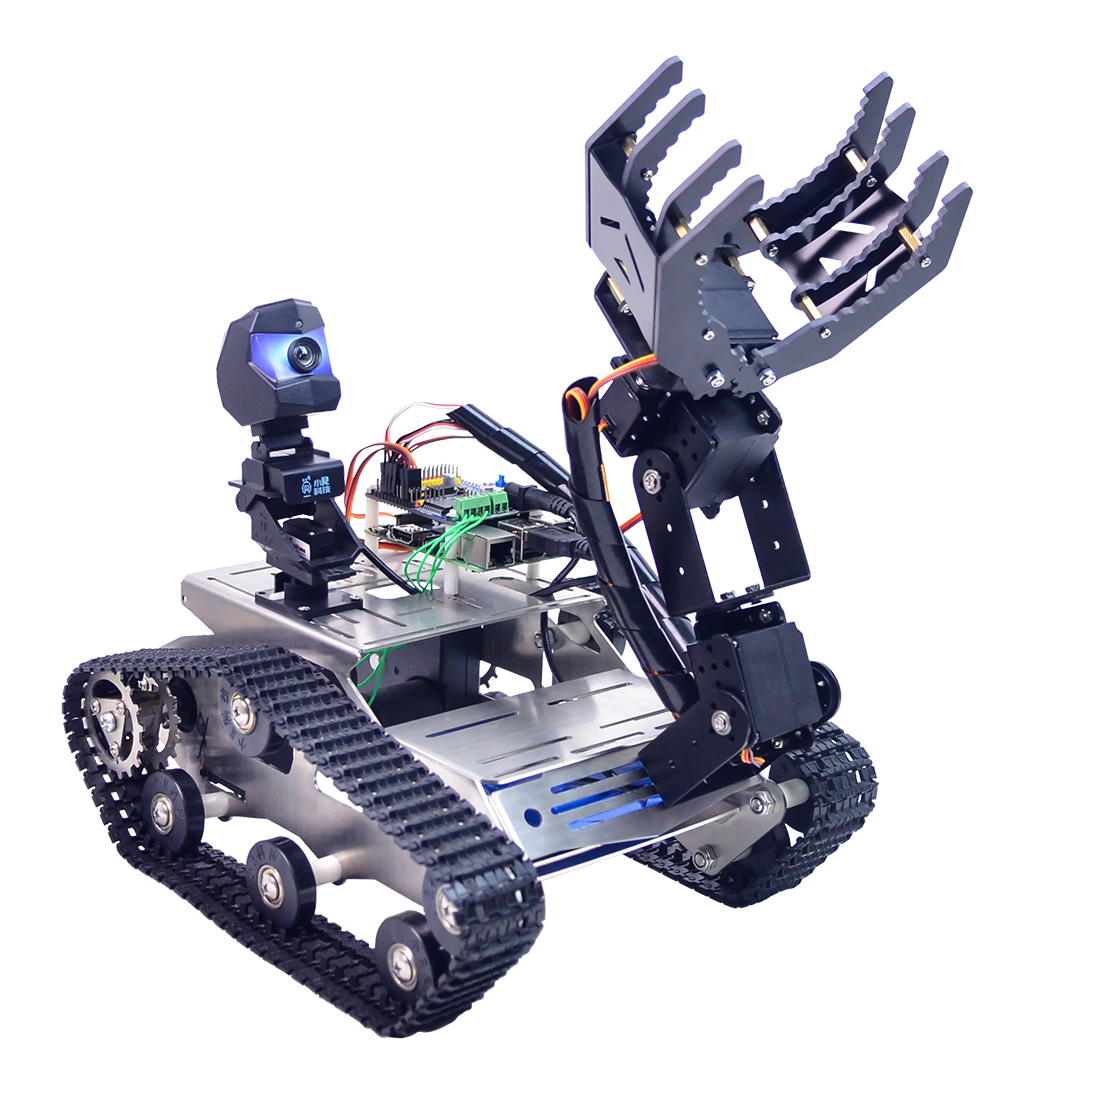 Programmable TH WiFi FPV Tank Robot Car Kit with Arm for Arduino MEGA - Standard Version Large Claw